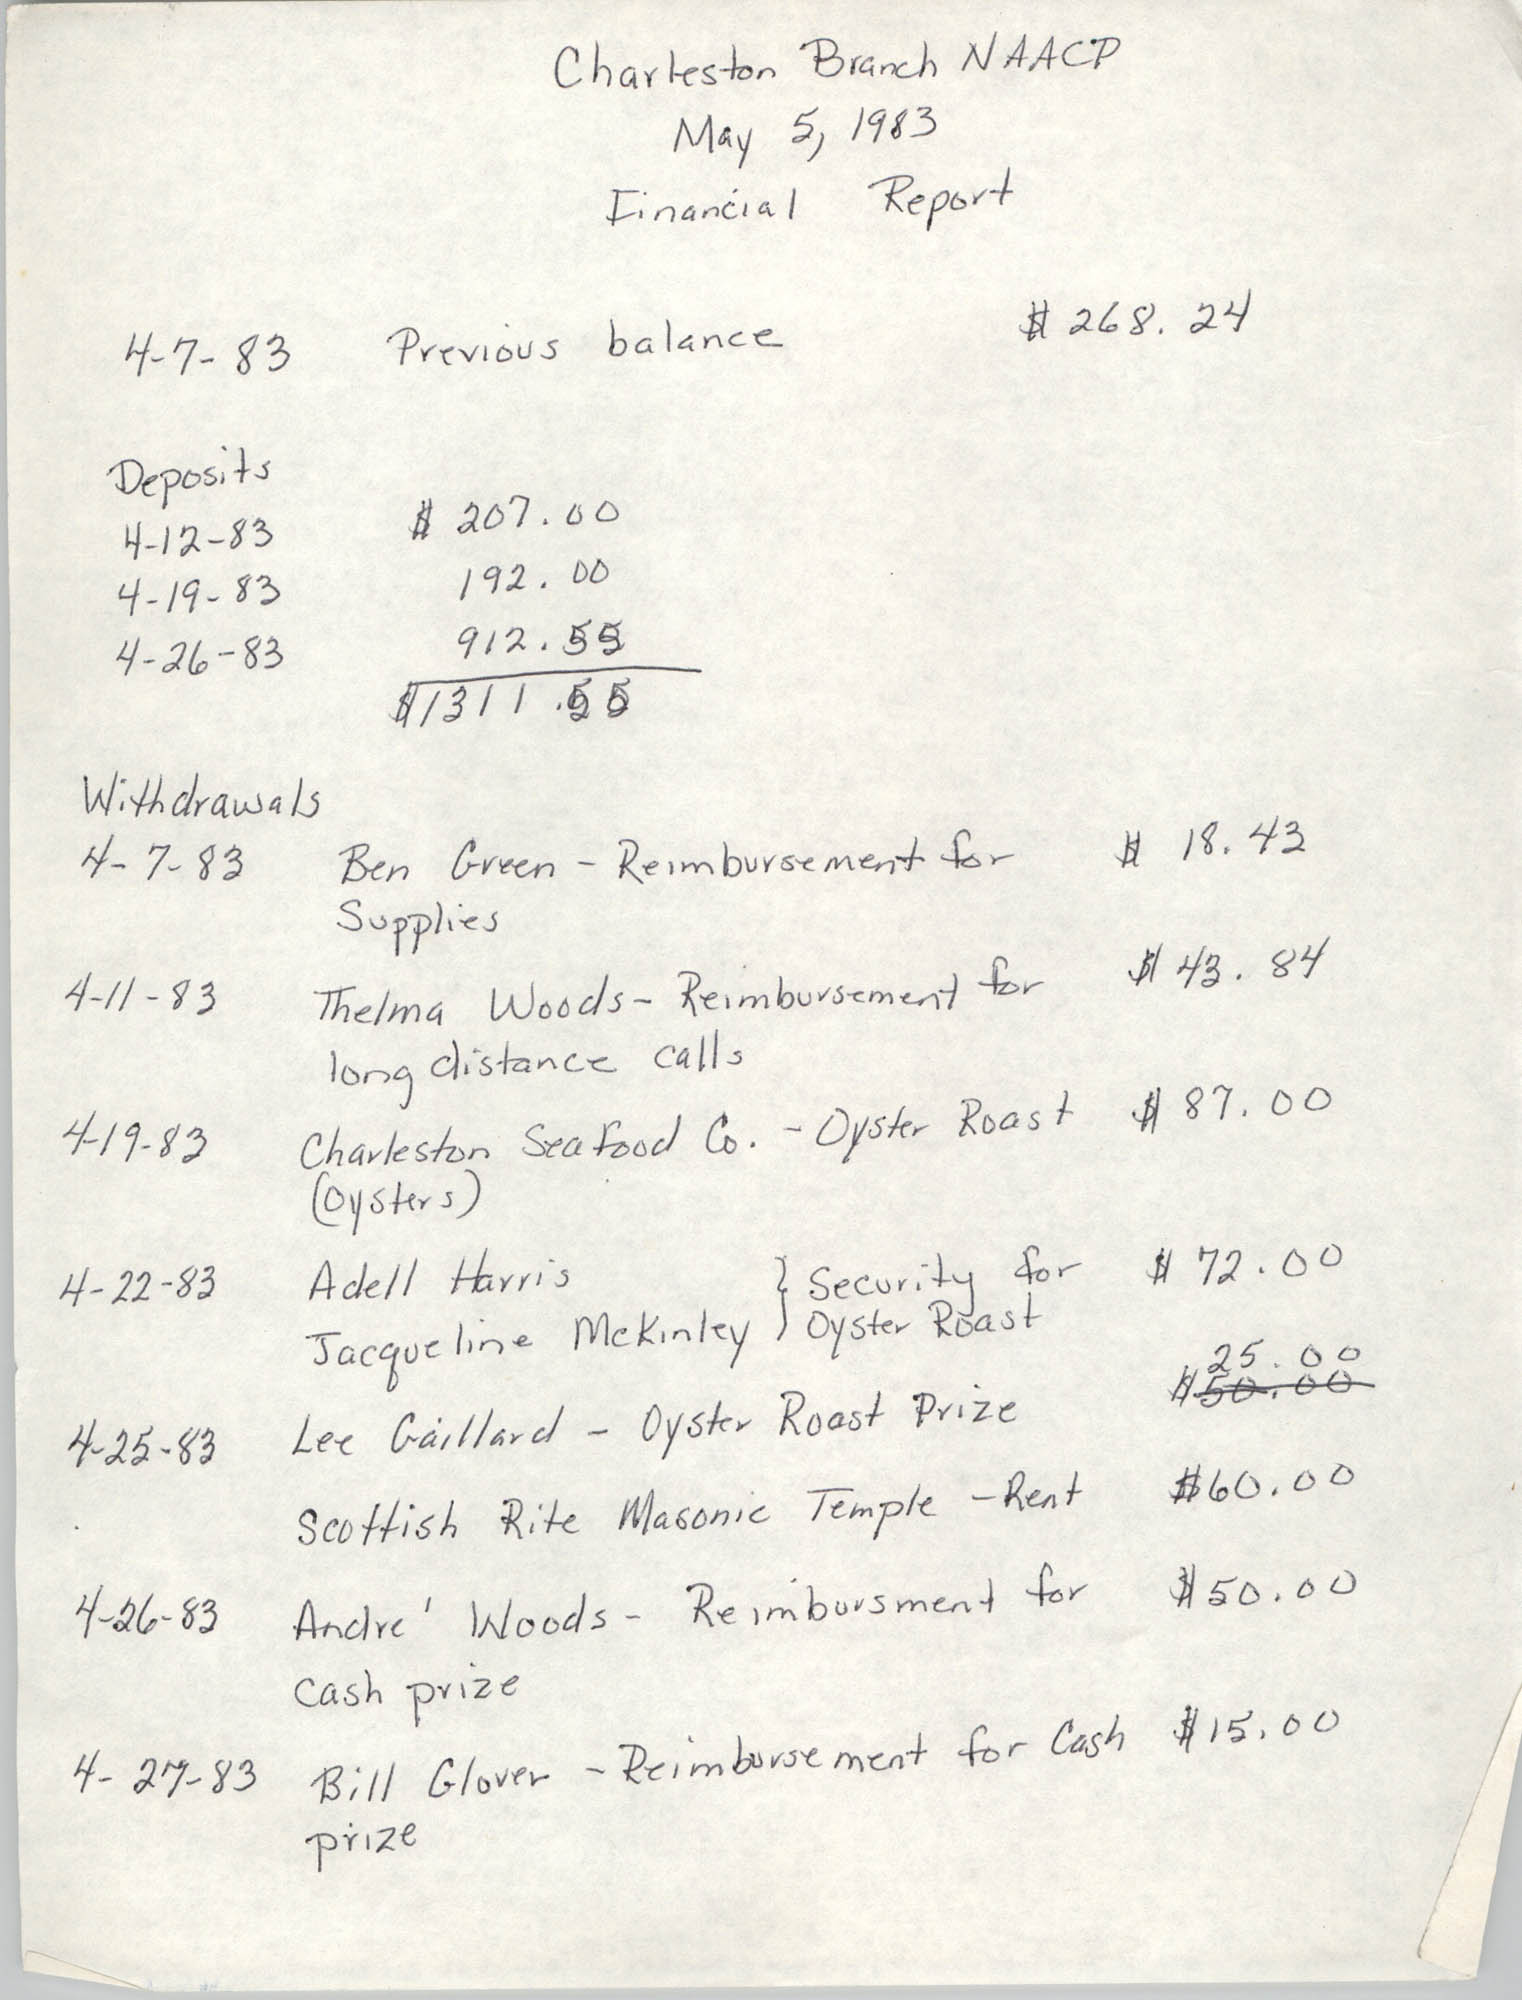 Charleston Branch of the NAACP Financial Report, May 5, 1983